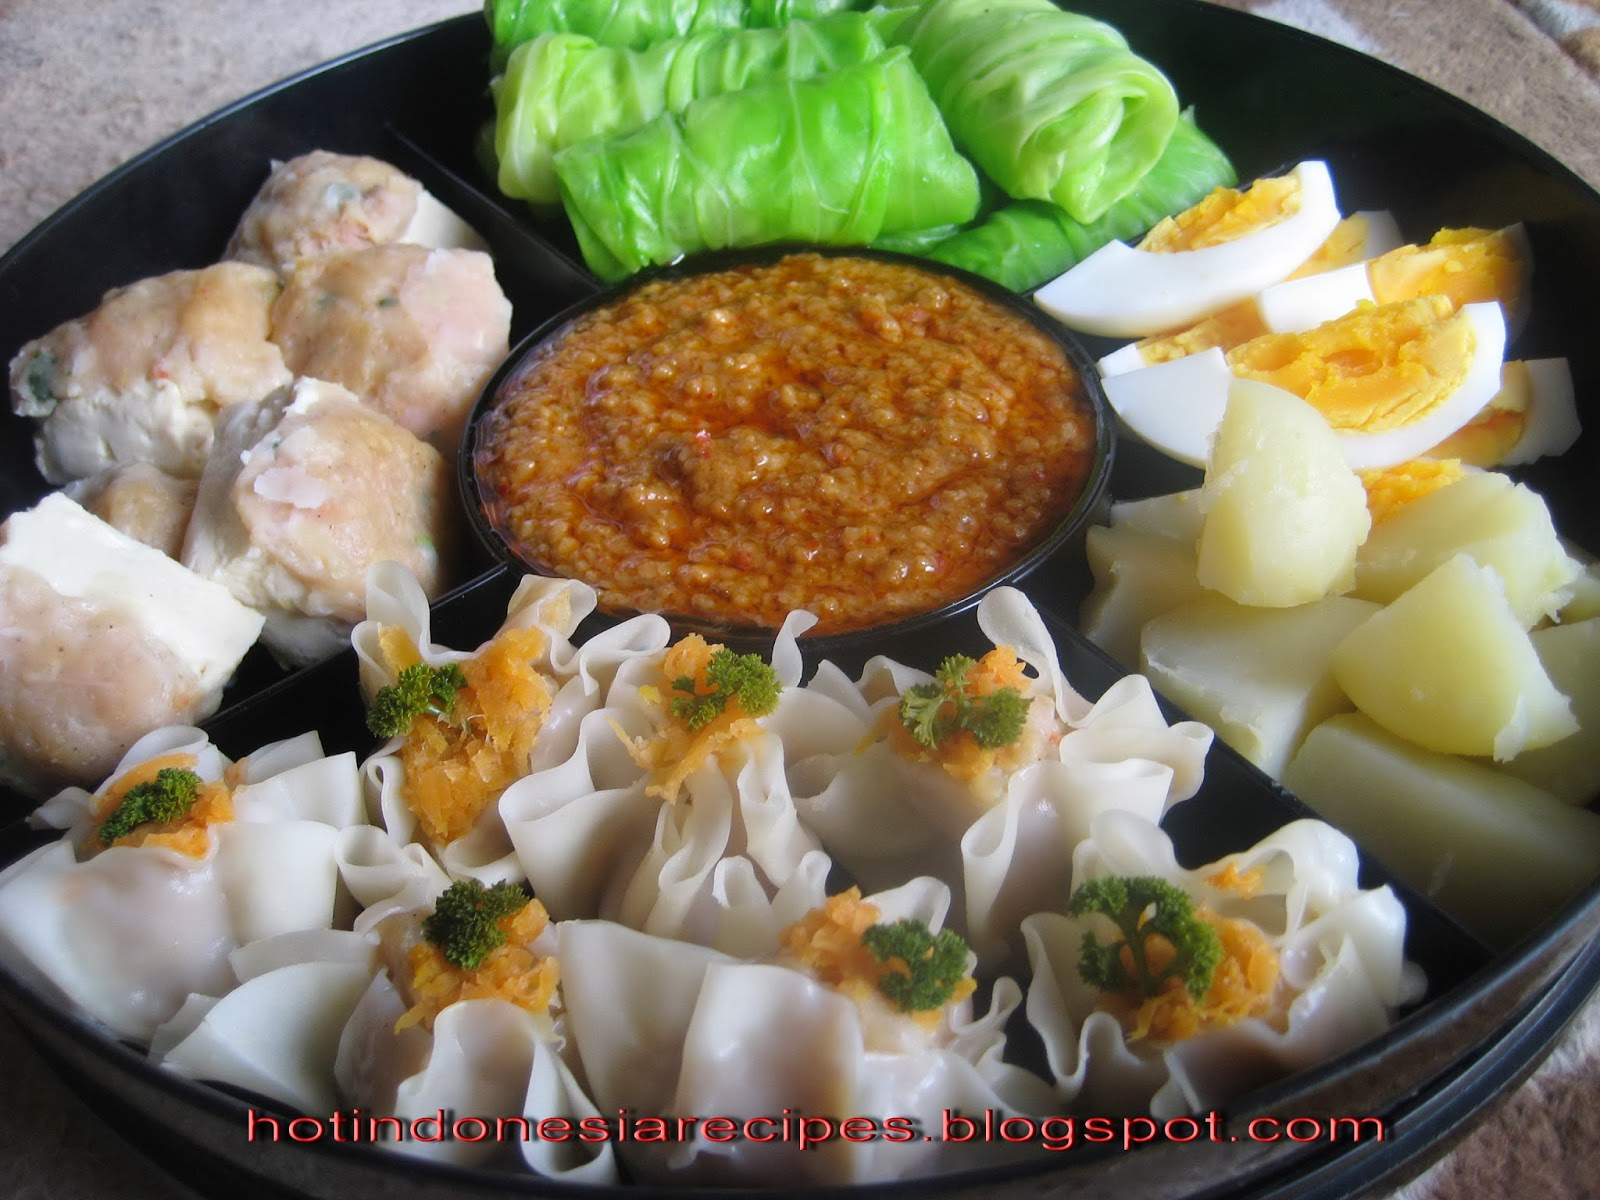 Hot-Indonesia-Recipes-Siomay